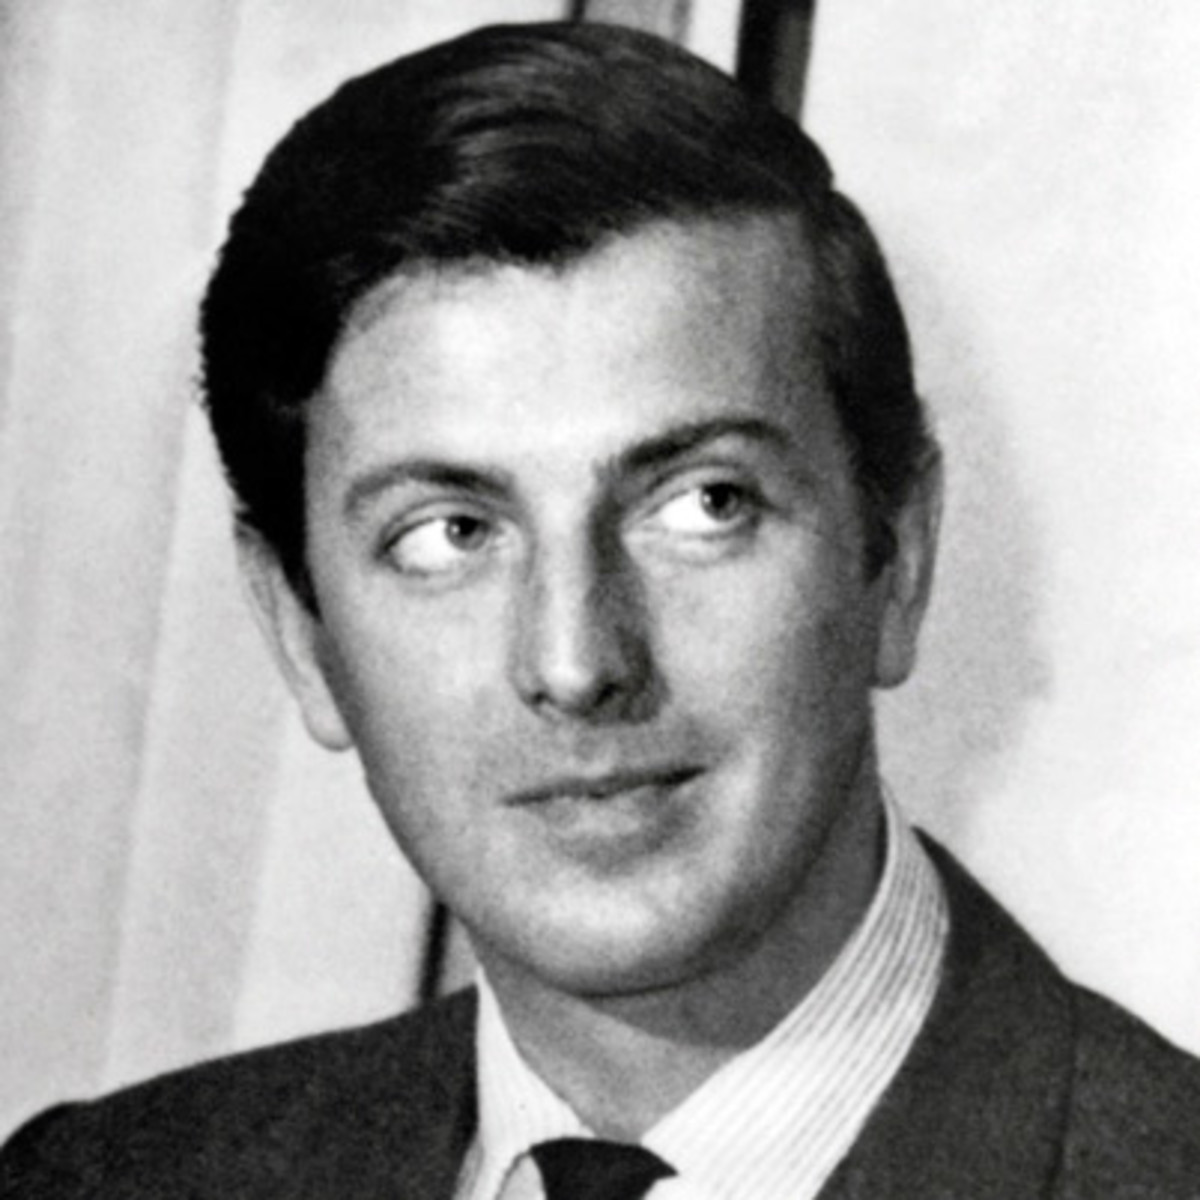 Hubert de Givenchy, French fashion designer: biography, personal life, career 98